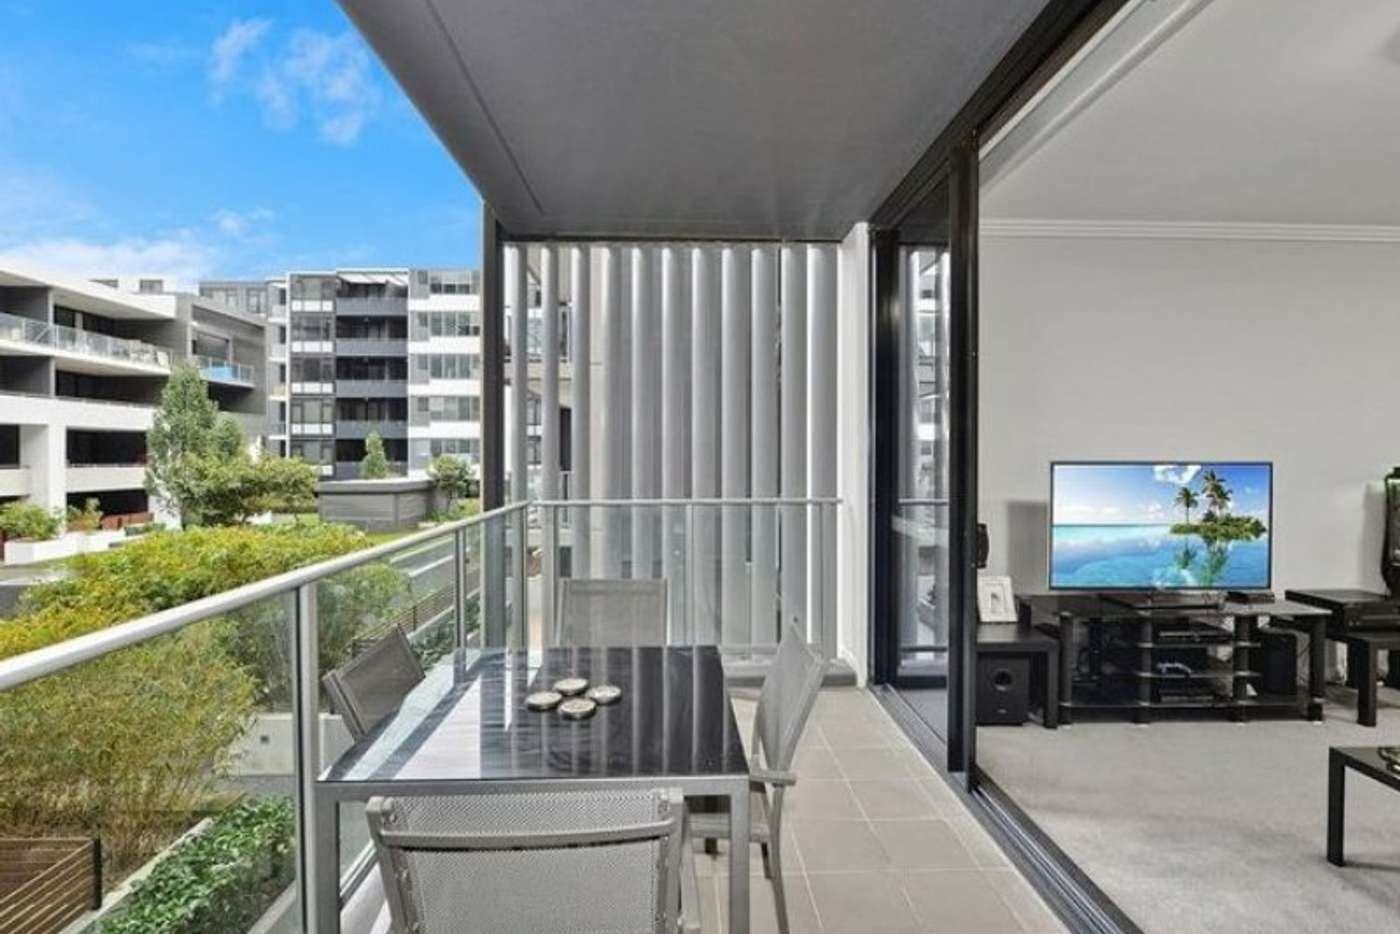 Main view of Homely unit listing, 701/3 Waterways St, Wentworth Point NSW 2127